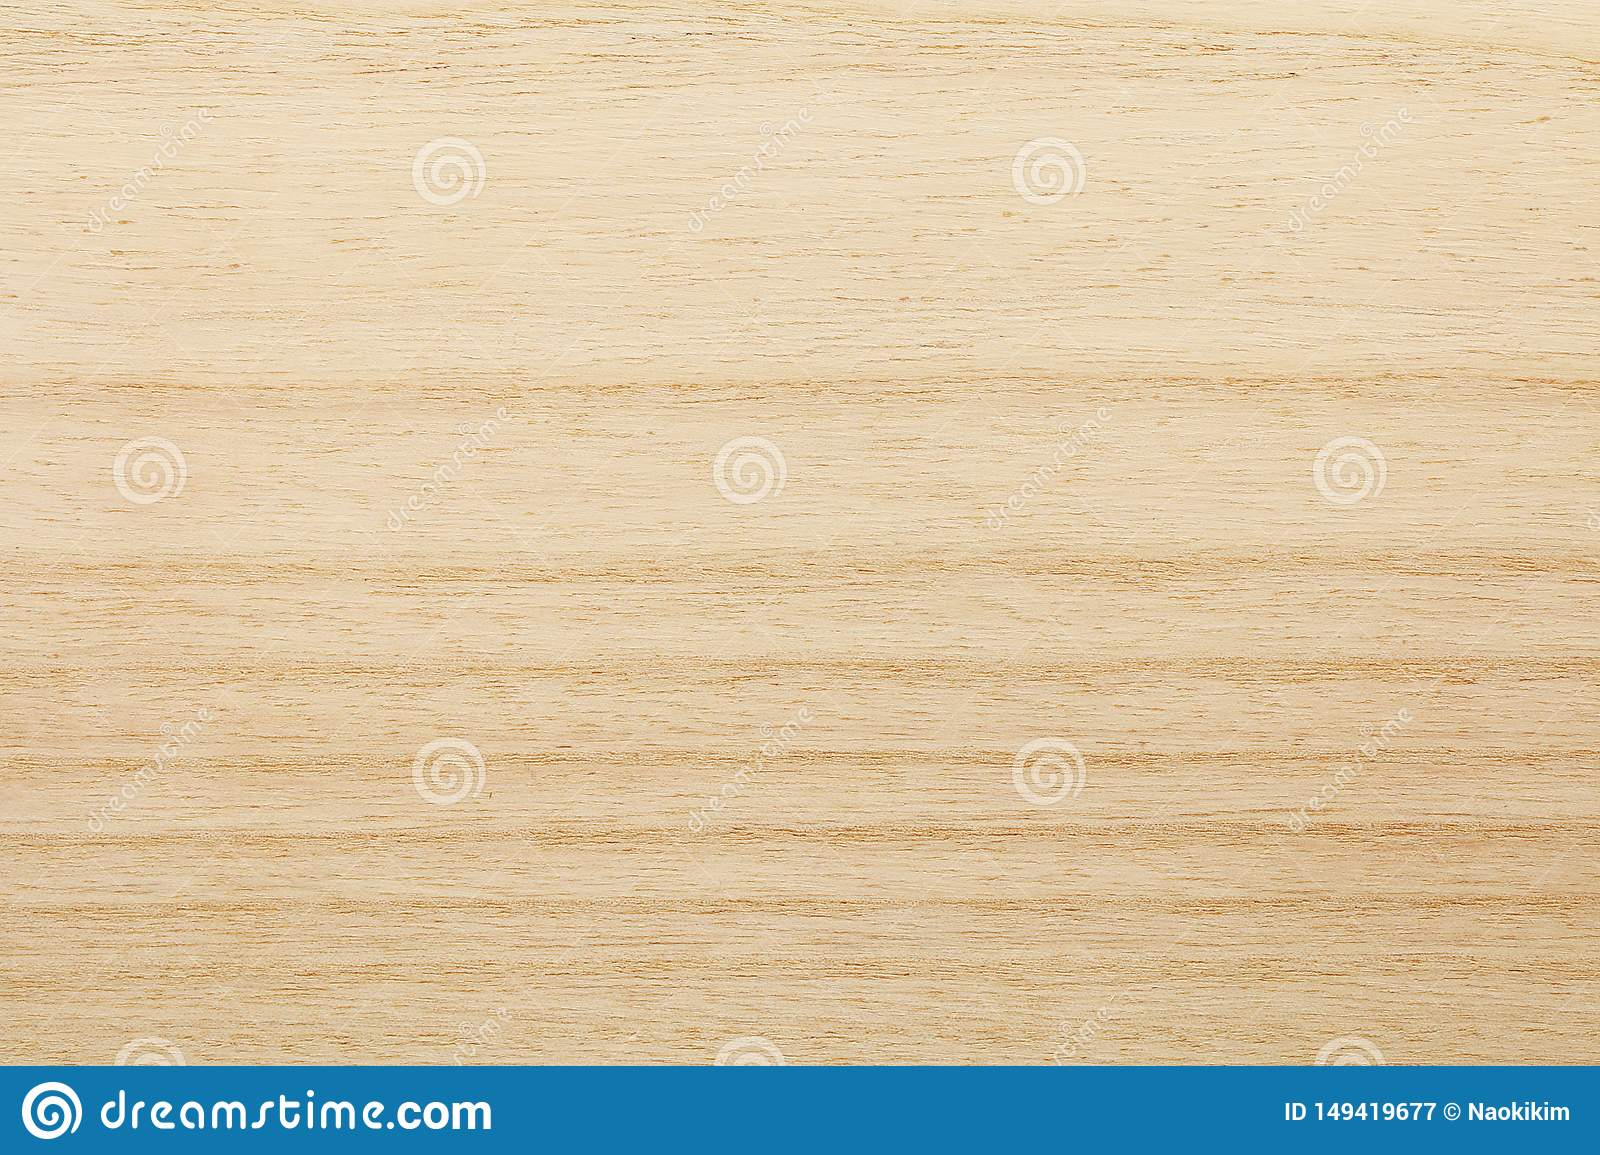 Natural brown wood plank texture or vintage board background